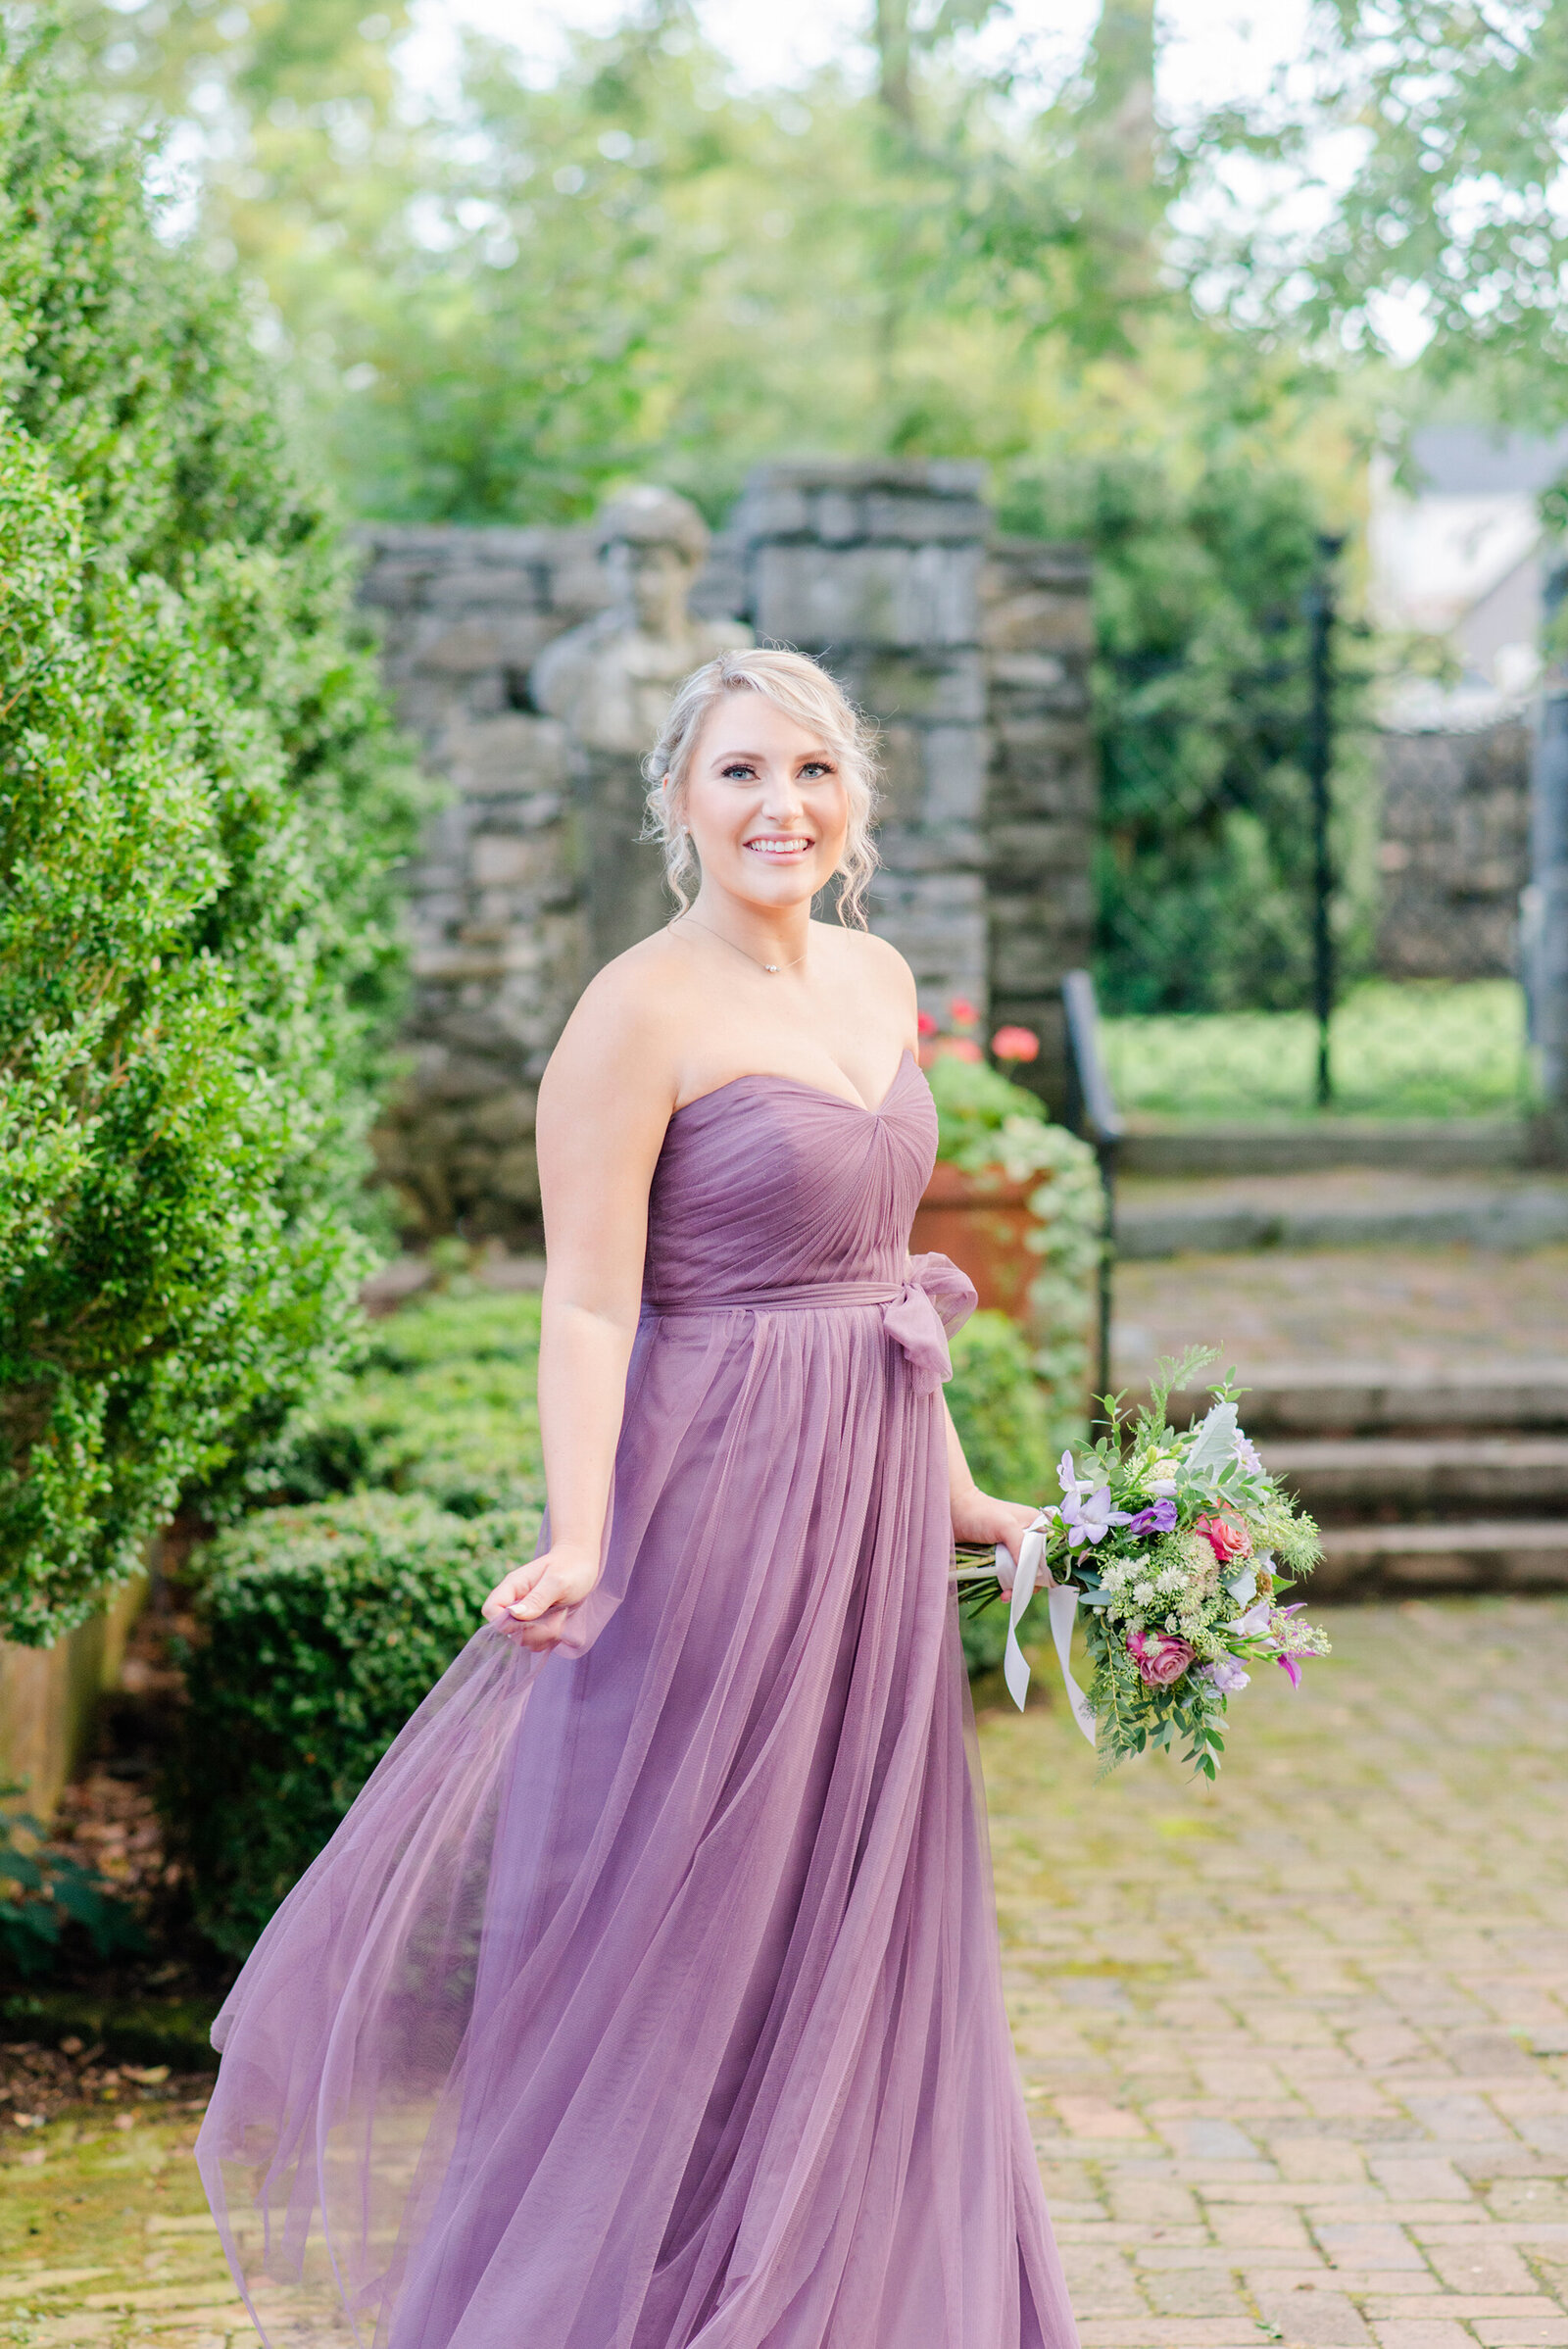 Bridesmaid in purple gown holding flowers and smiling